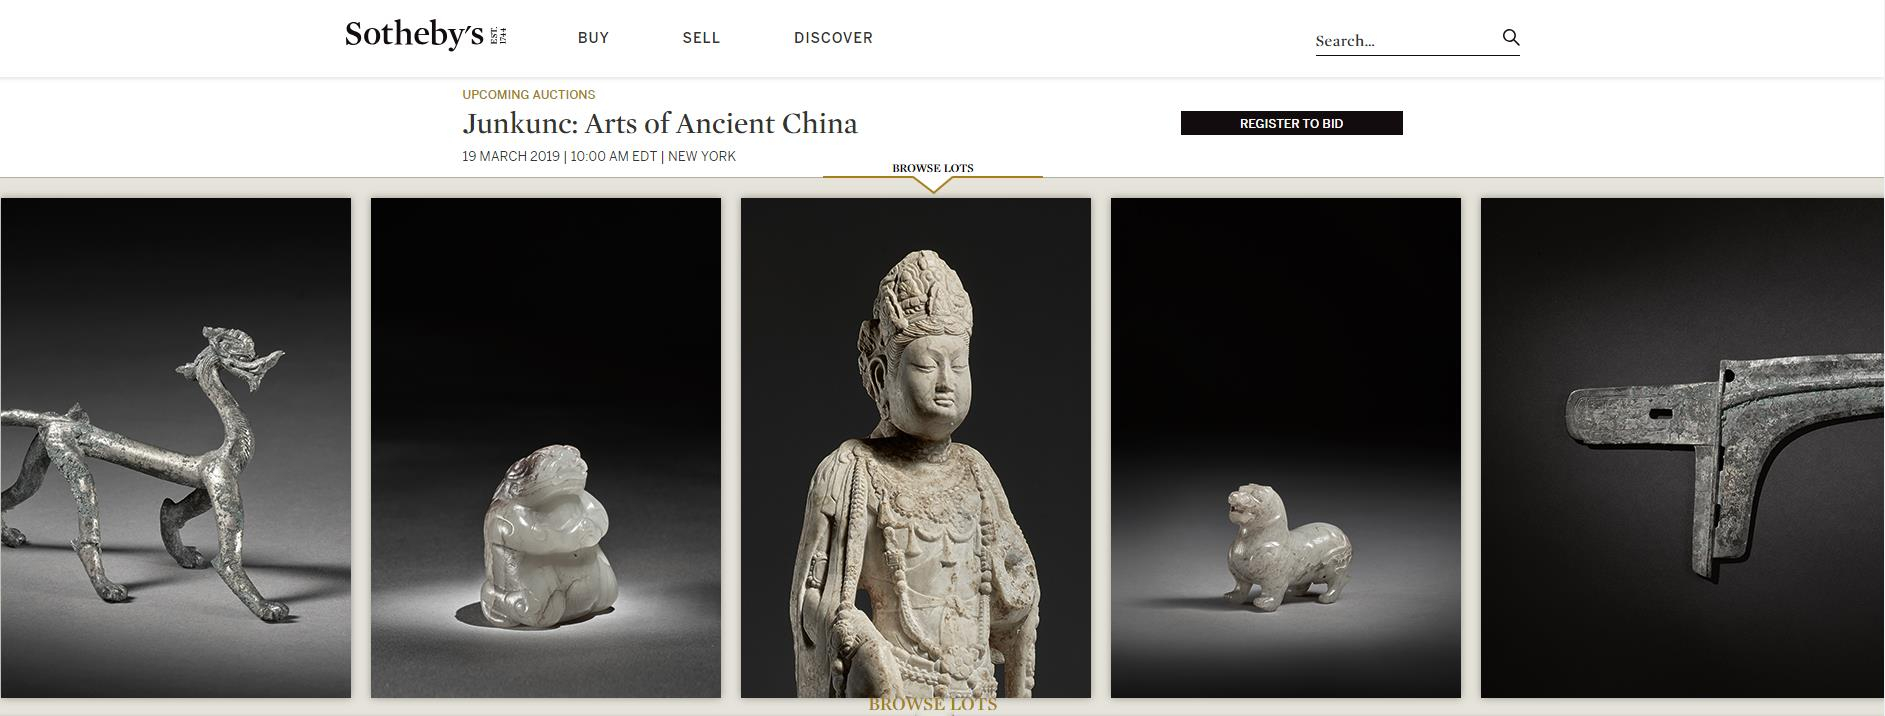 Sotheby's Asia Week auctions to feature Chinese art pieces - CGTN